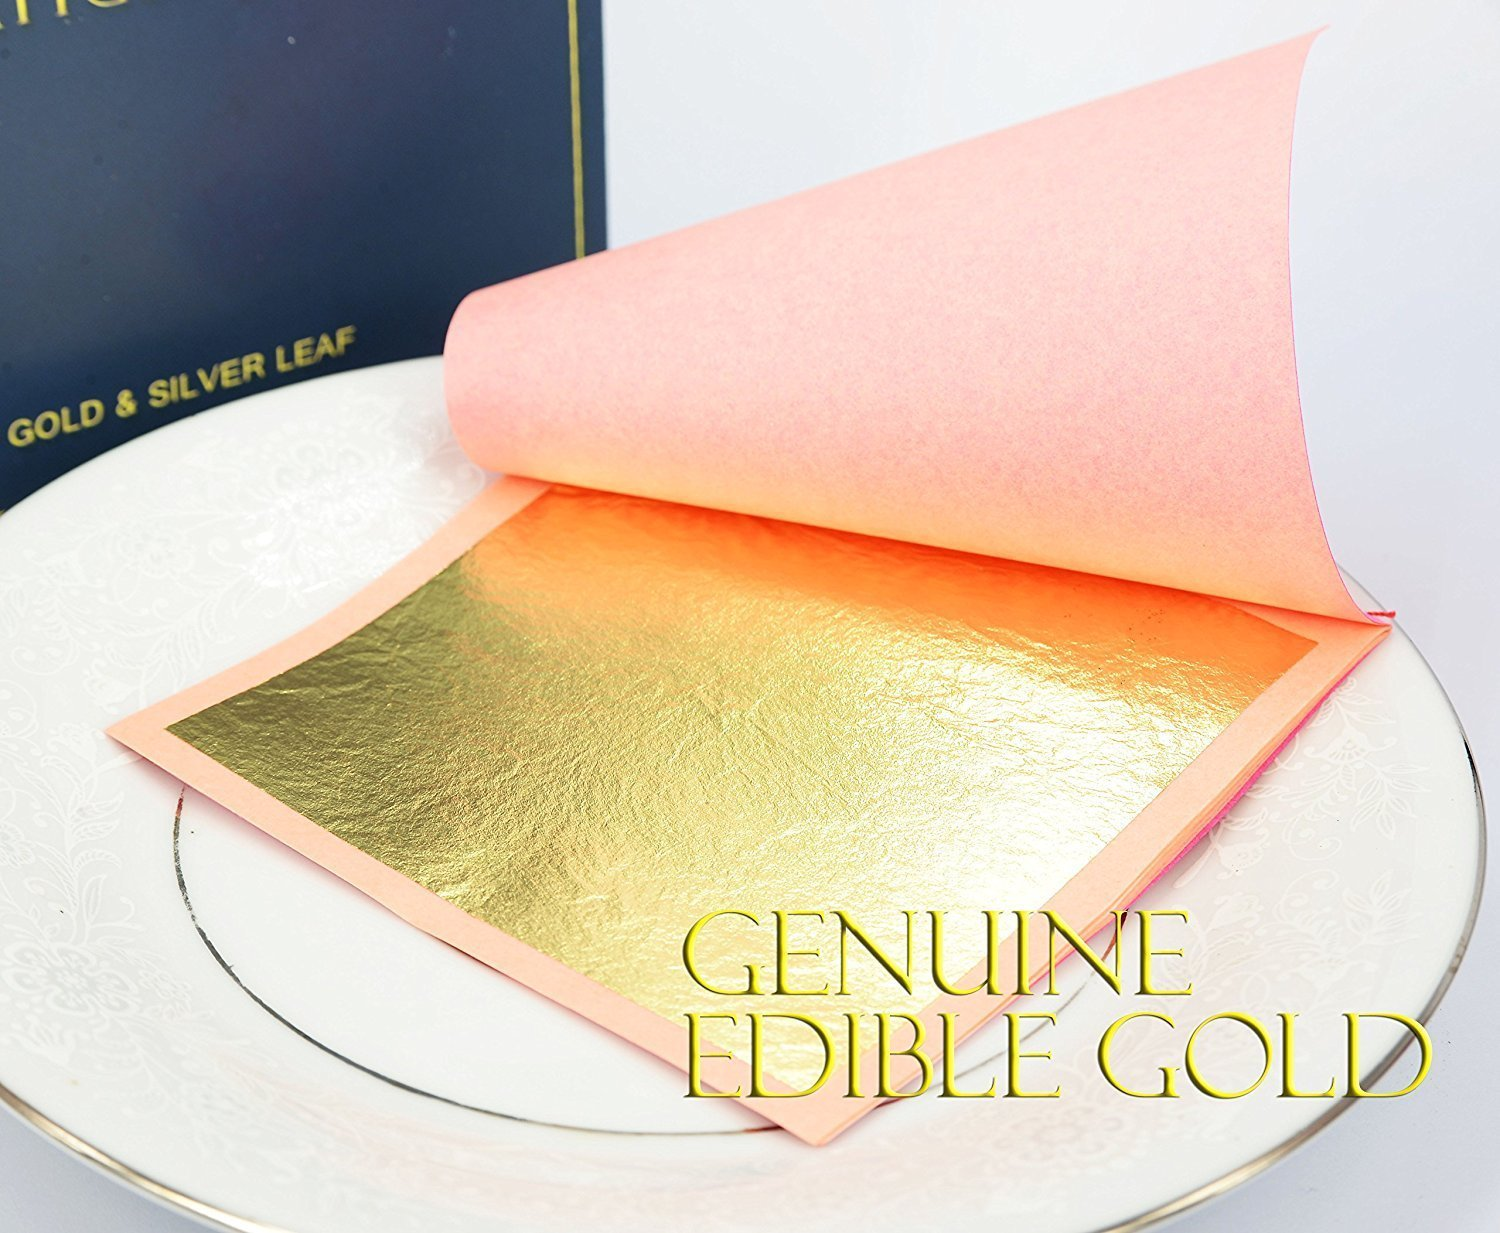 Edible Genuine Gold Leaf Sheets by Barnabas Blattgold, 10 Sheets (Loose Leaf), 3 1/8 inches Booklet, Professional Quality